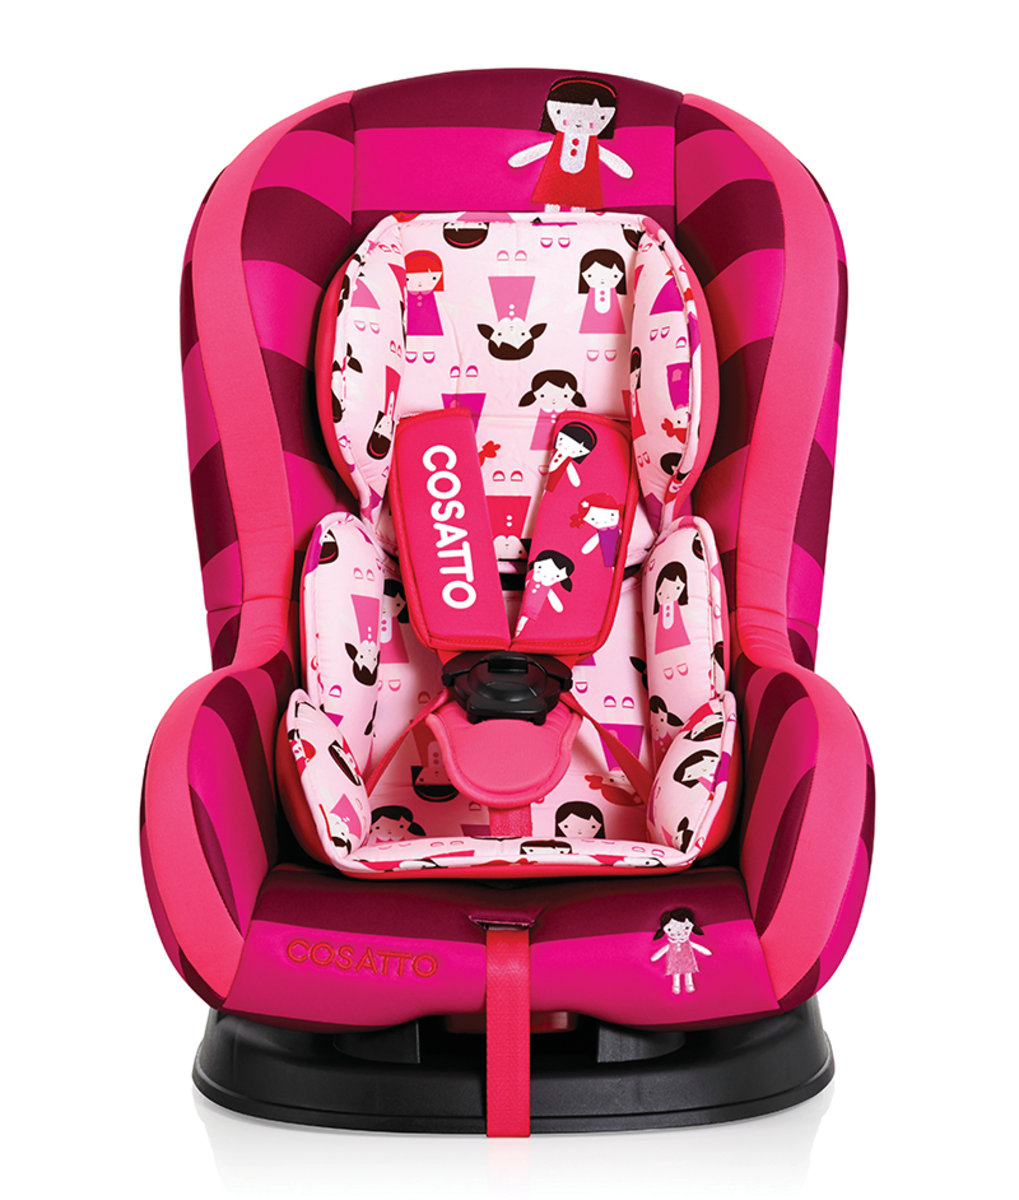 COSATTO | Cosatto Moova Group 1 Car Seat - Dilly Dolly | HKTVmall ...